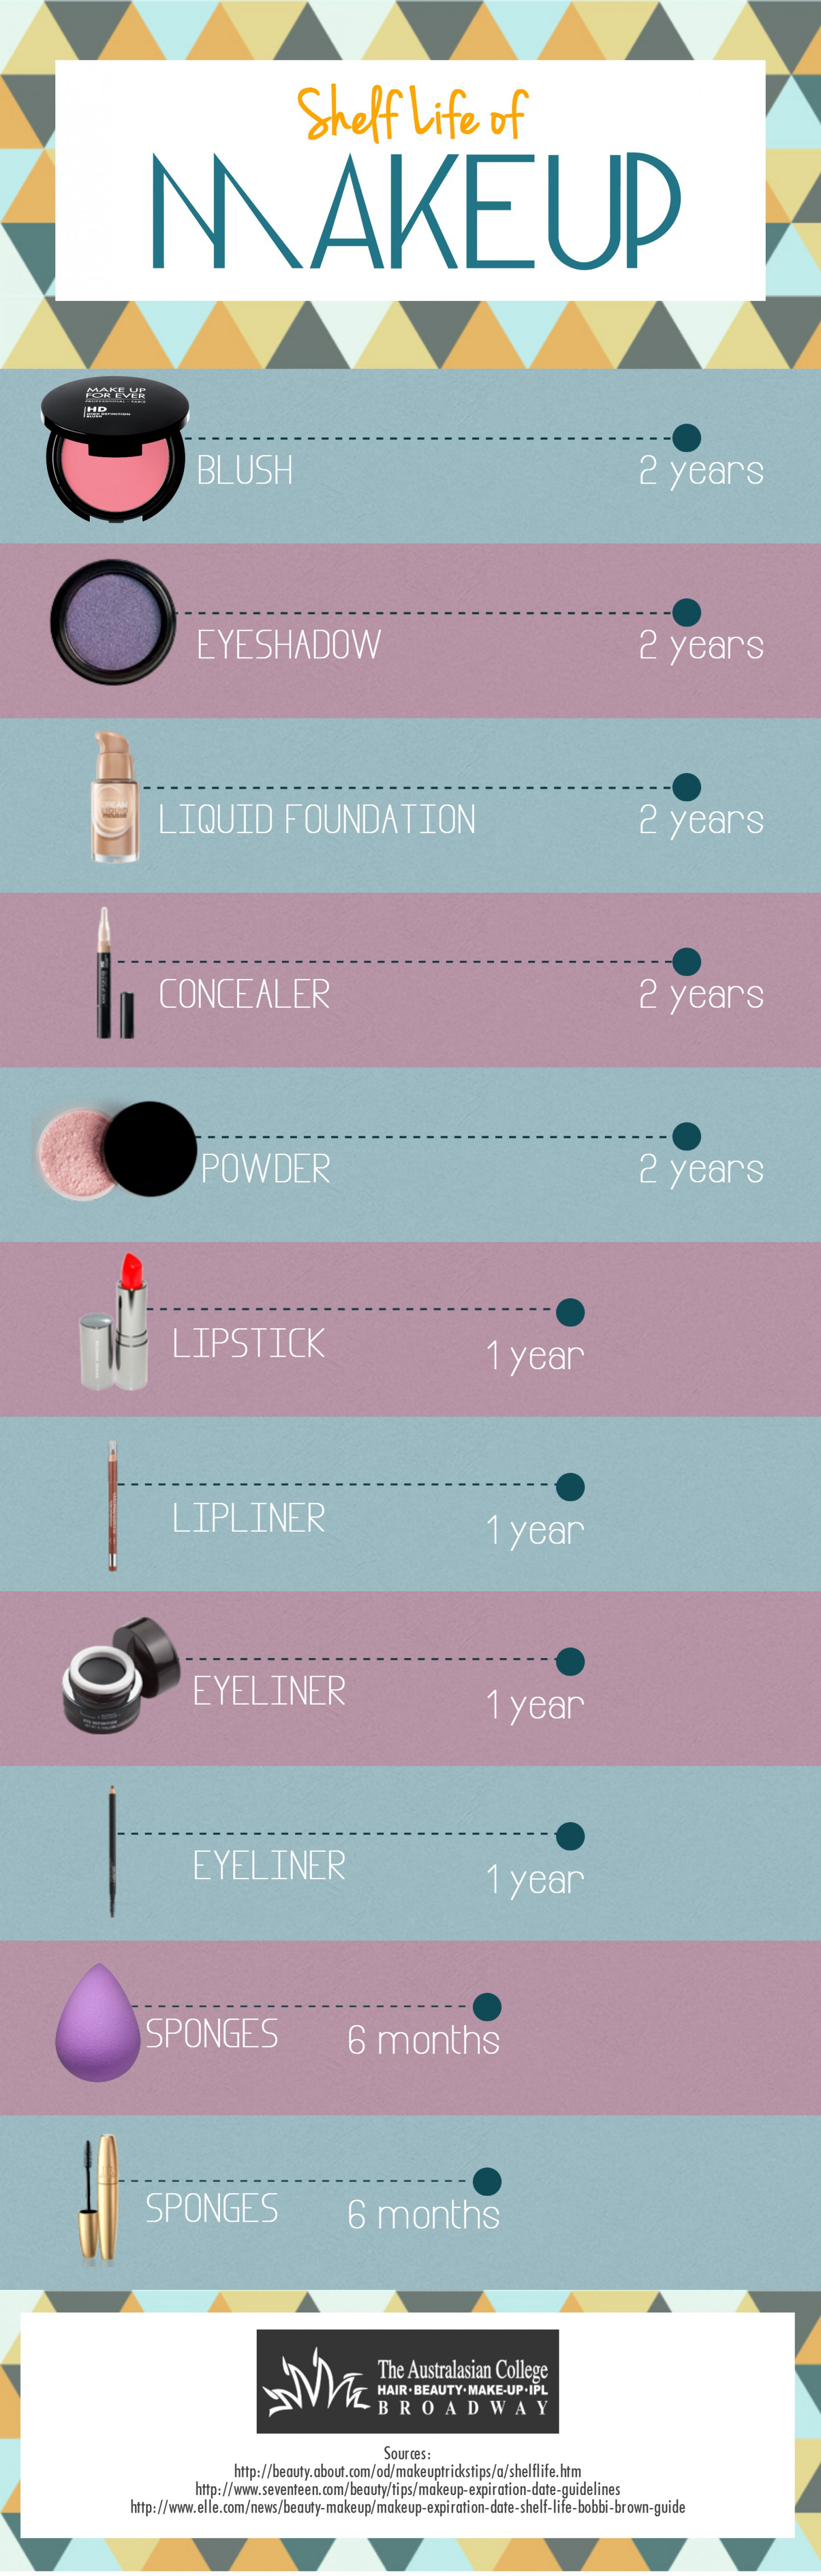 Shelf Life of Make-up Infographic